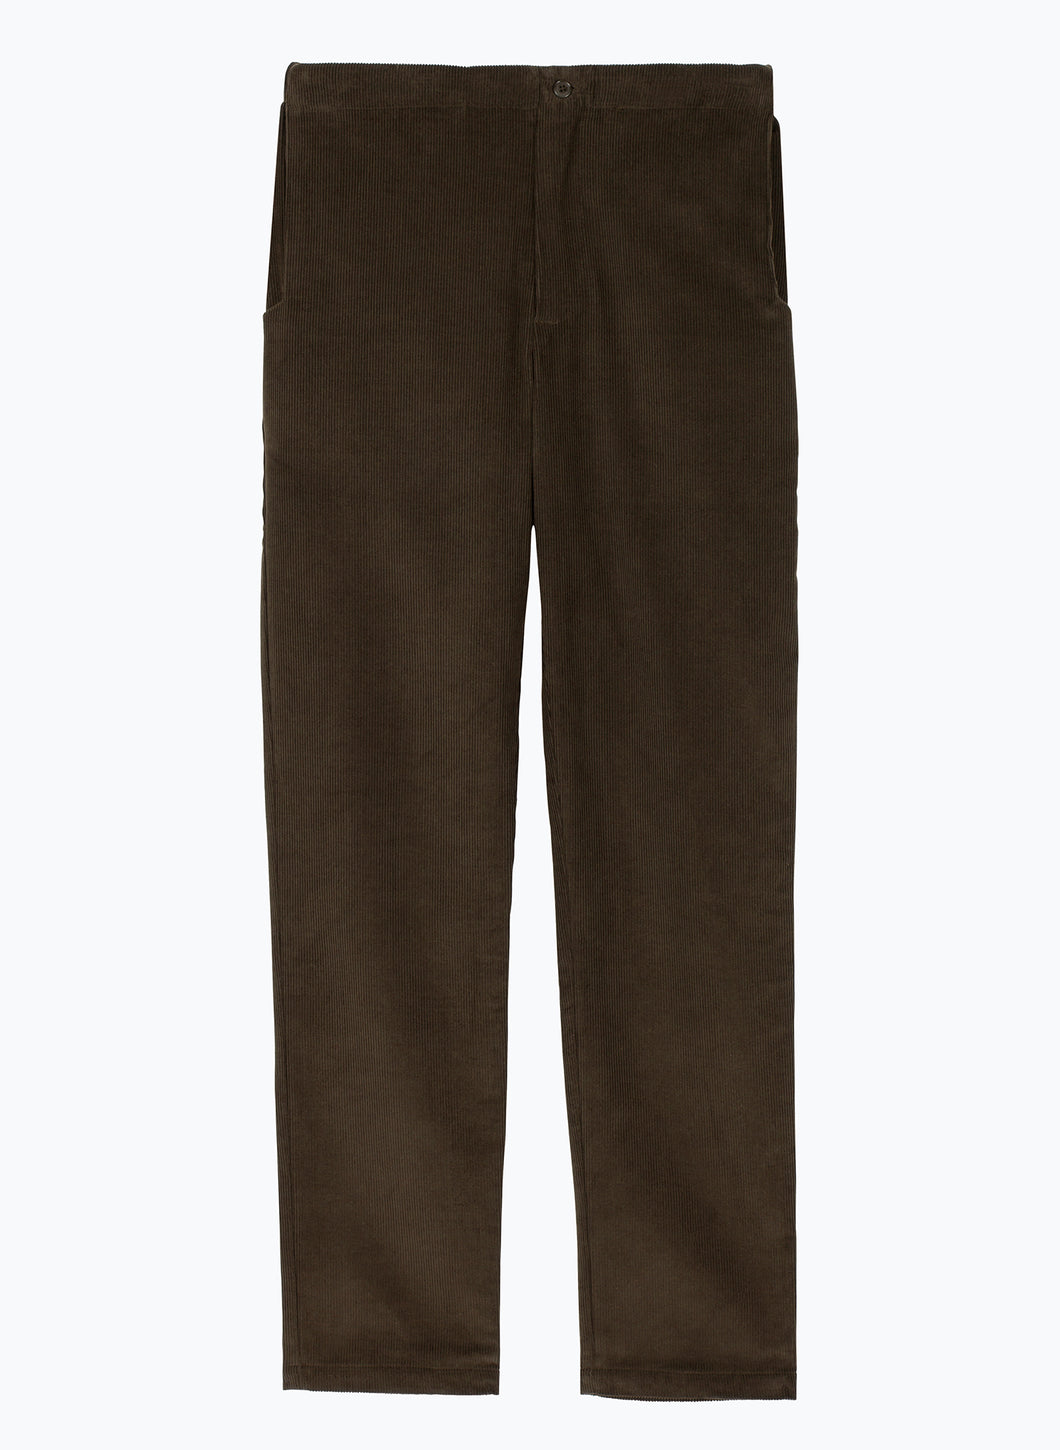 Pants with Notched Pockets in Olive Corduroy